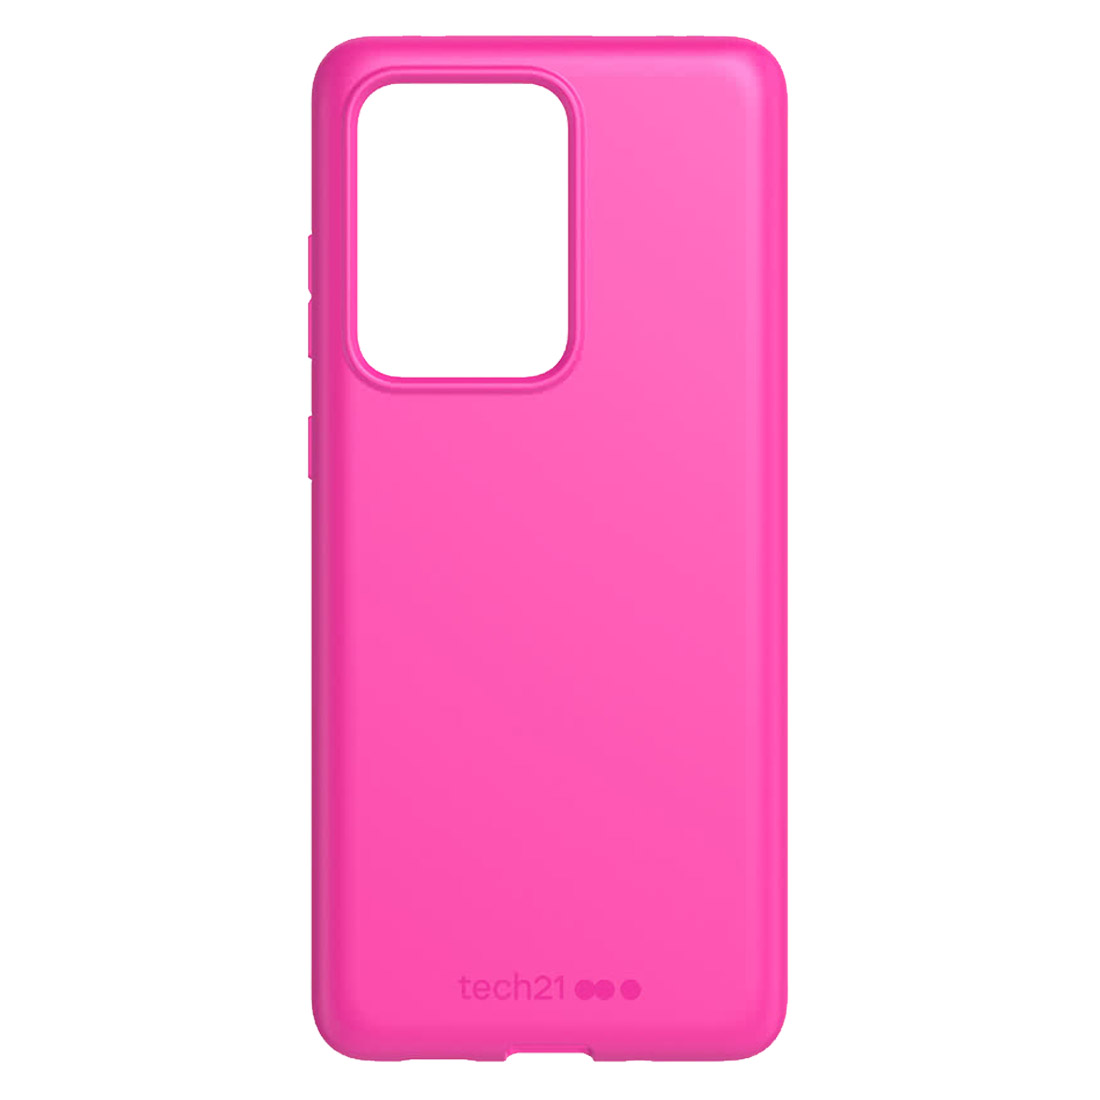 Tech21 Studio Colour Case for Samsung Galaxy S20 Ultra T21-7715 - Pink